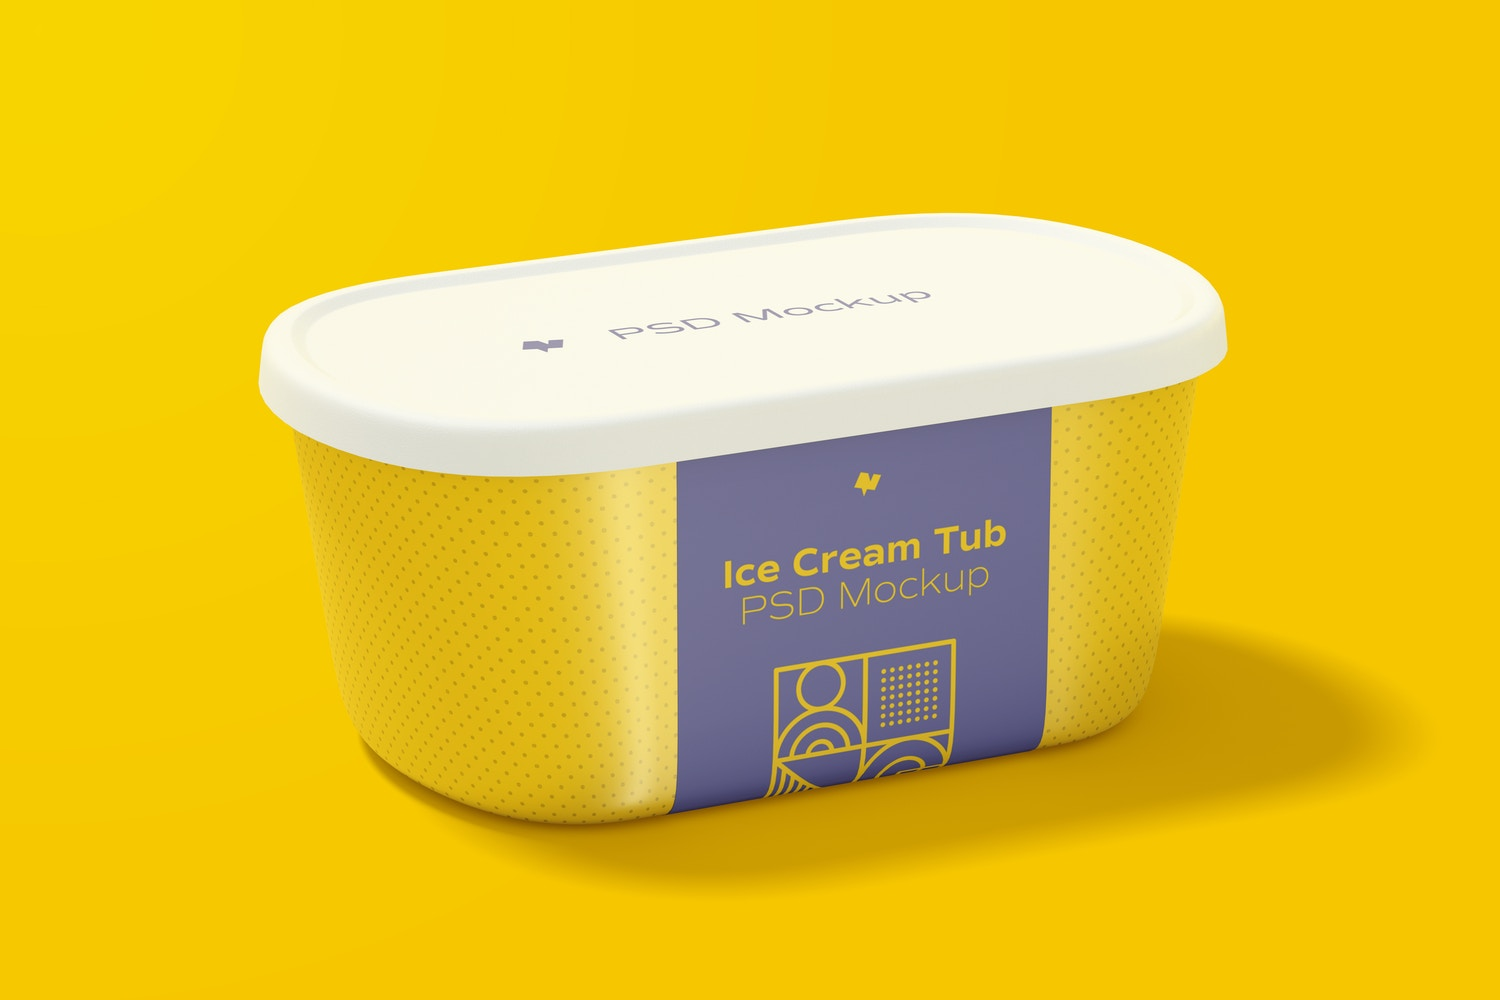 Unleash your imagination and explore with the range of colors for both the lid and the container.